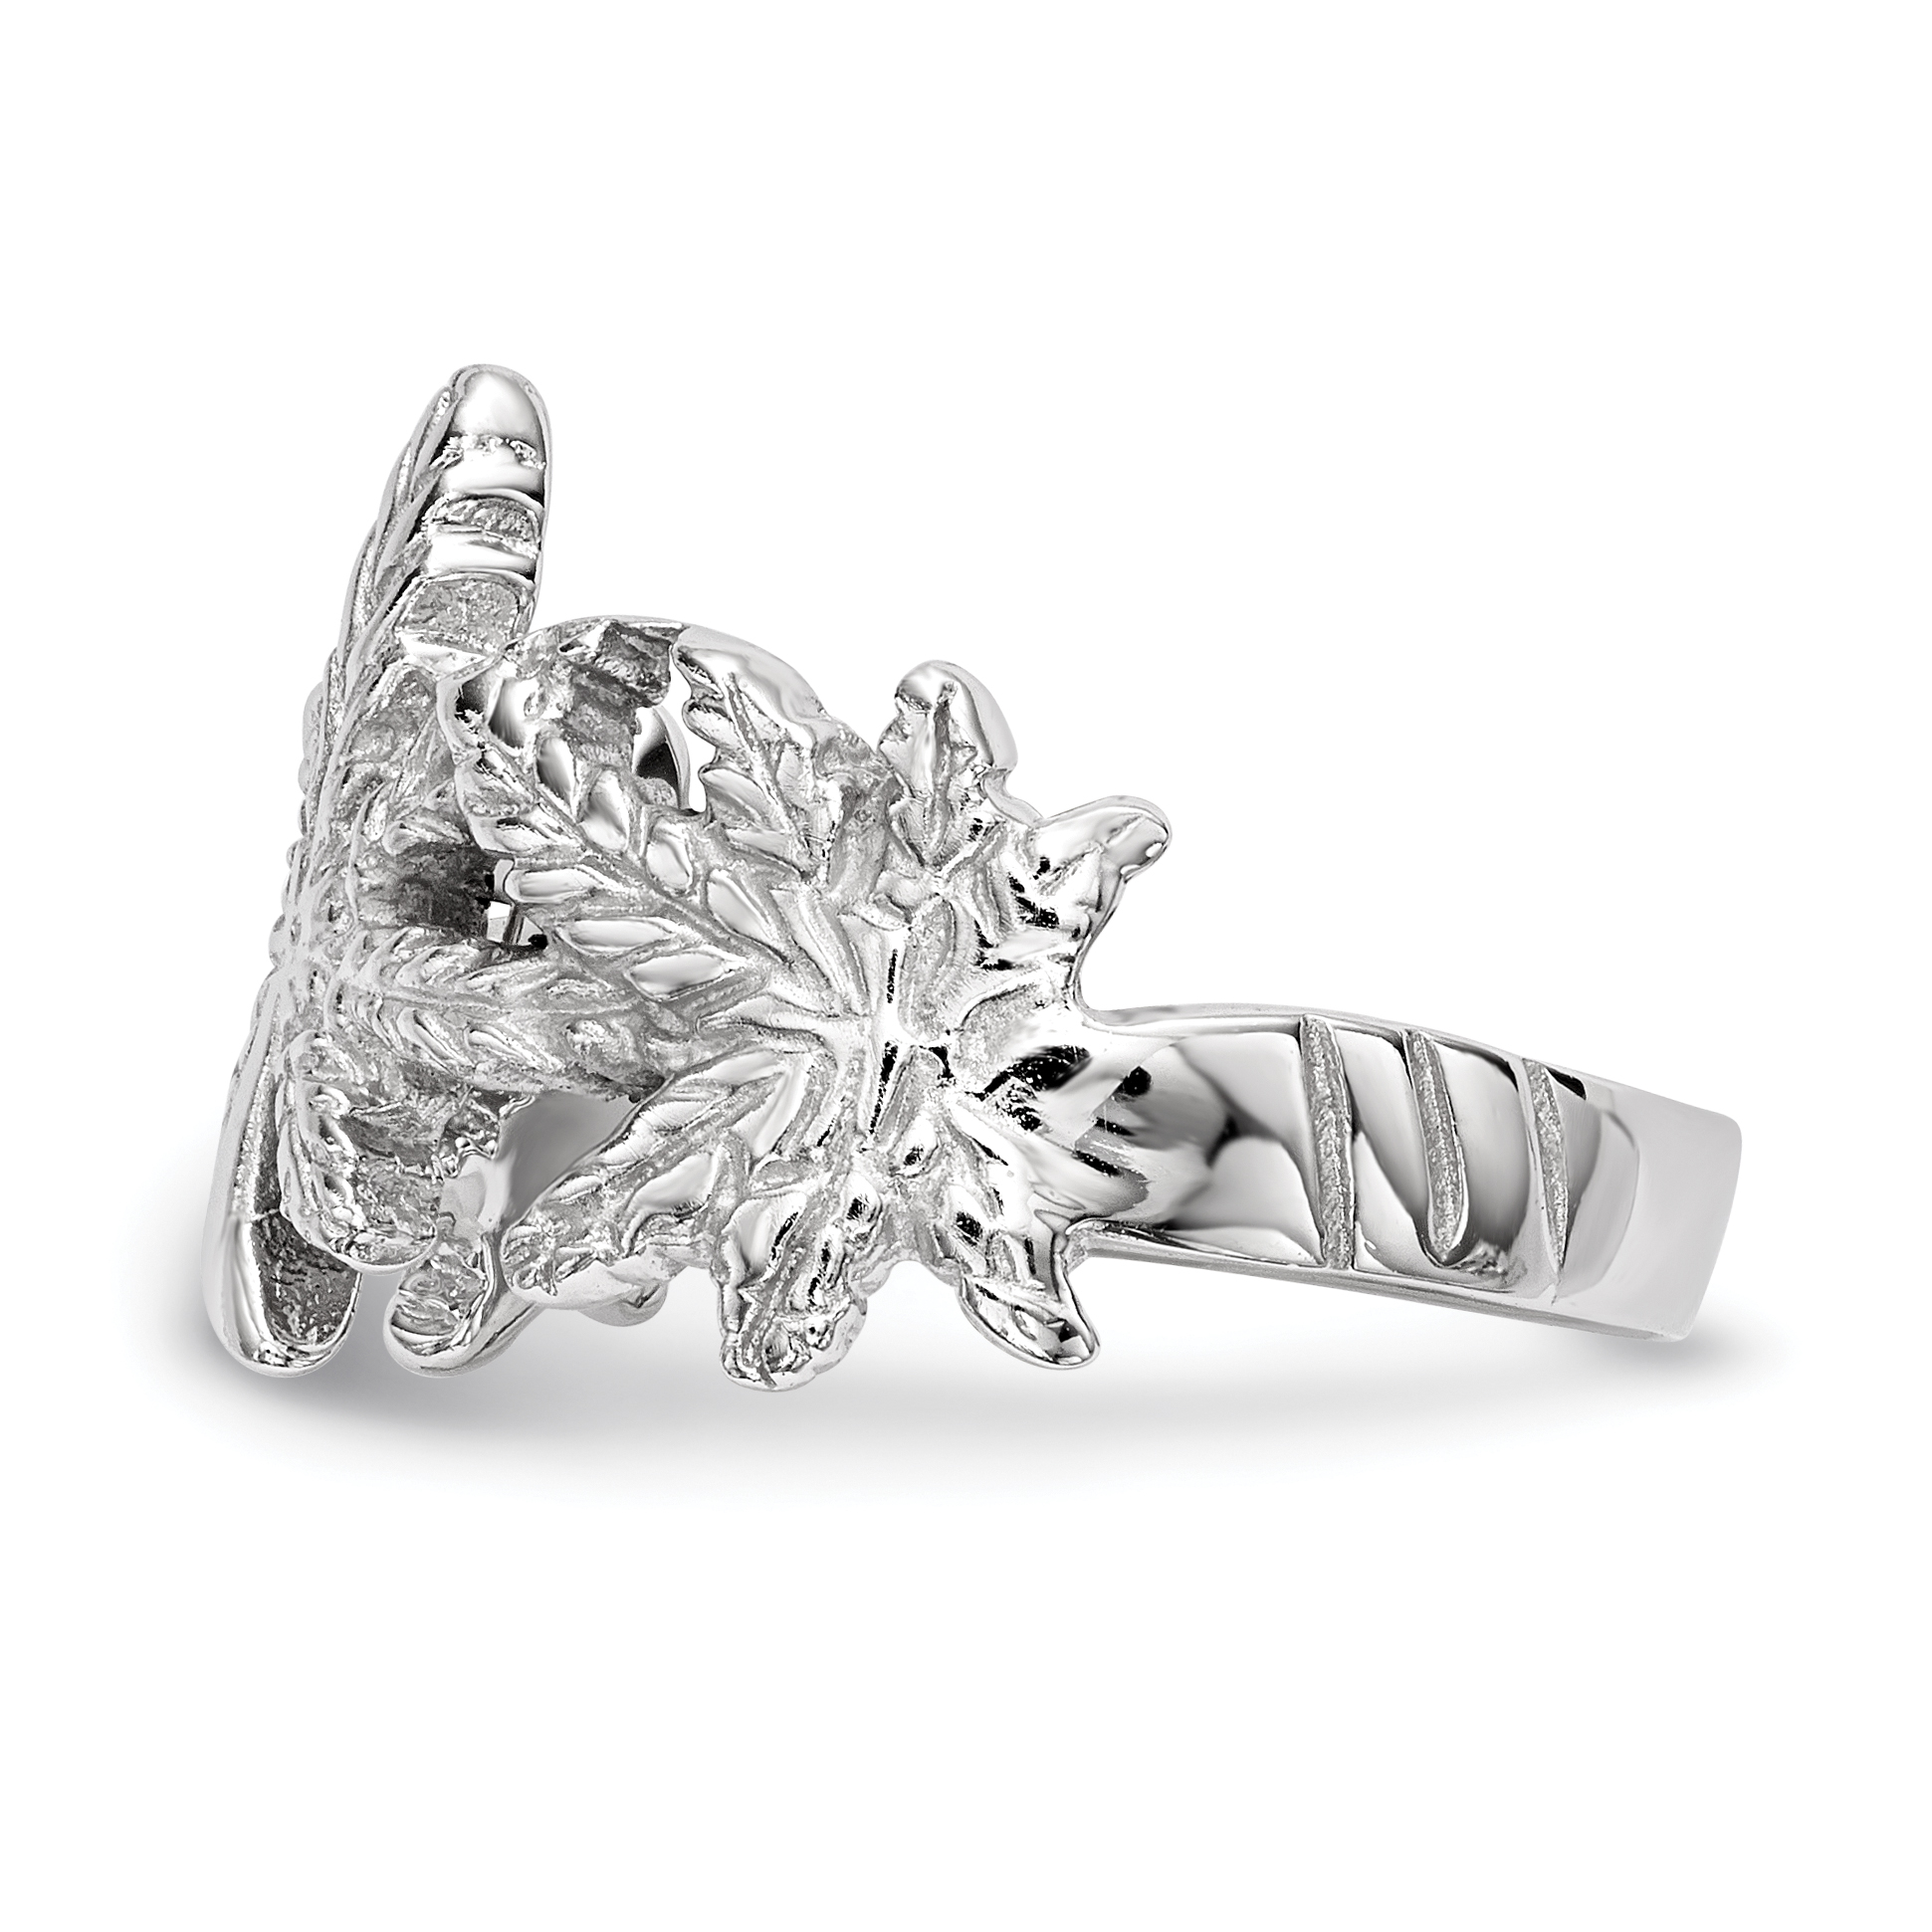 925 Sterling Silver Leaf Band Ring Size 8.00 Flowers/leaf Fine Jewelry Gifts For Women For Her - image 1 de 4